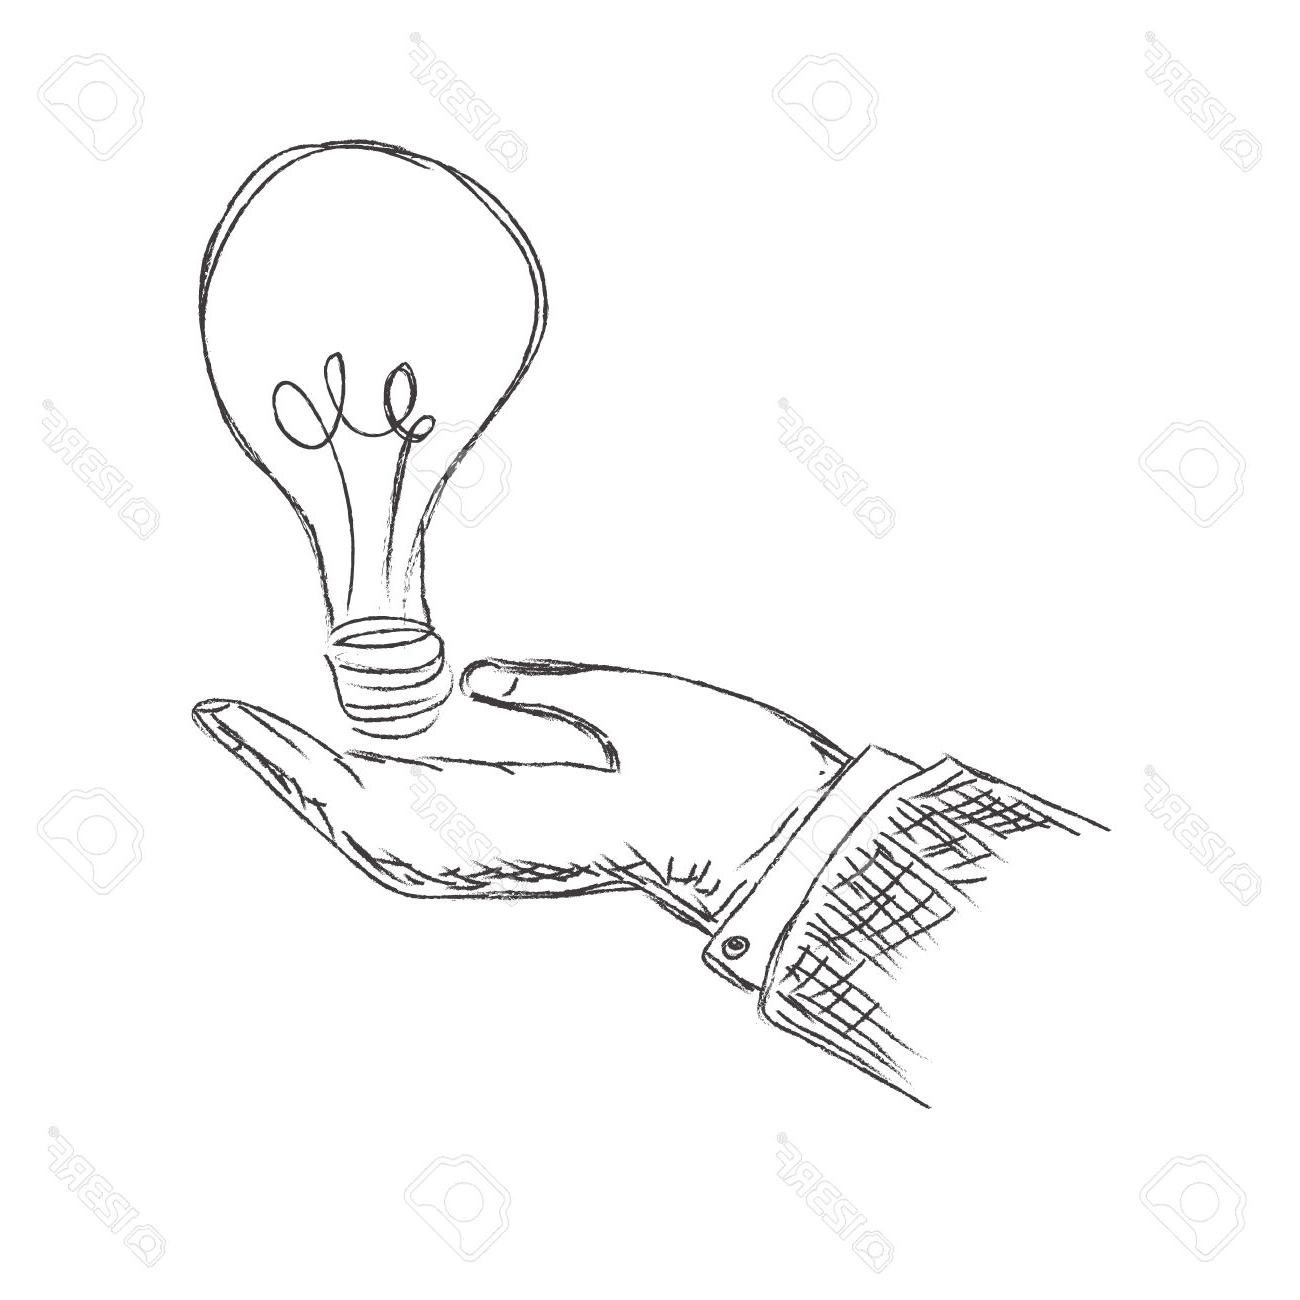 1300x1300 Top Hand Holding Light Bulb Sketch Vector Illustration Stock Library